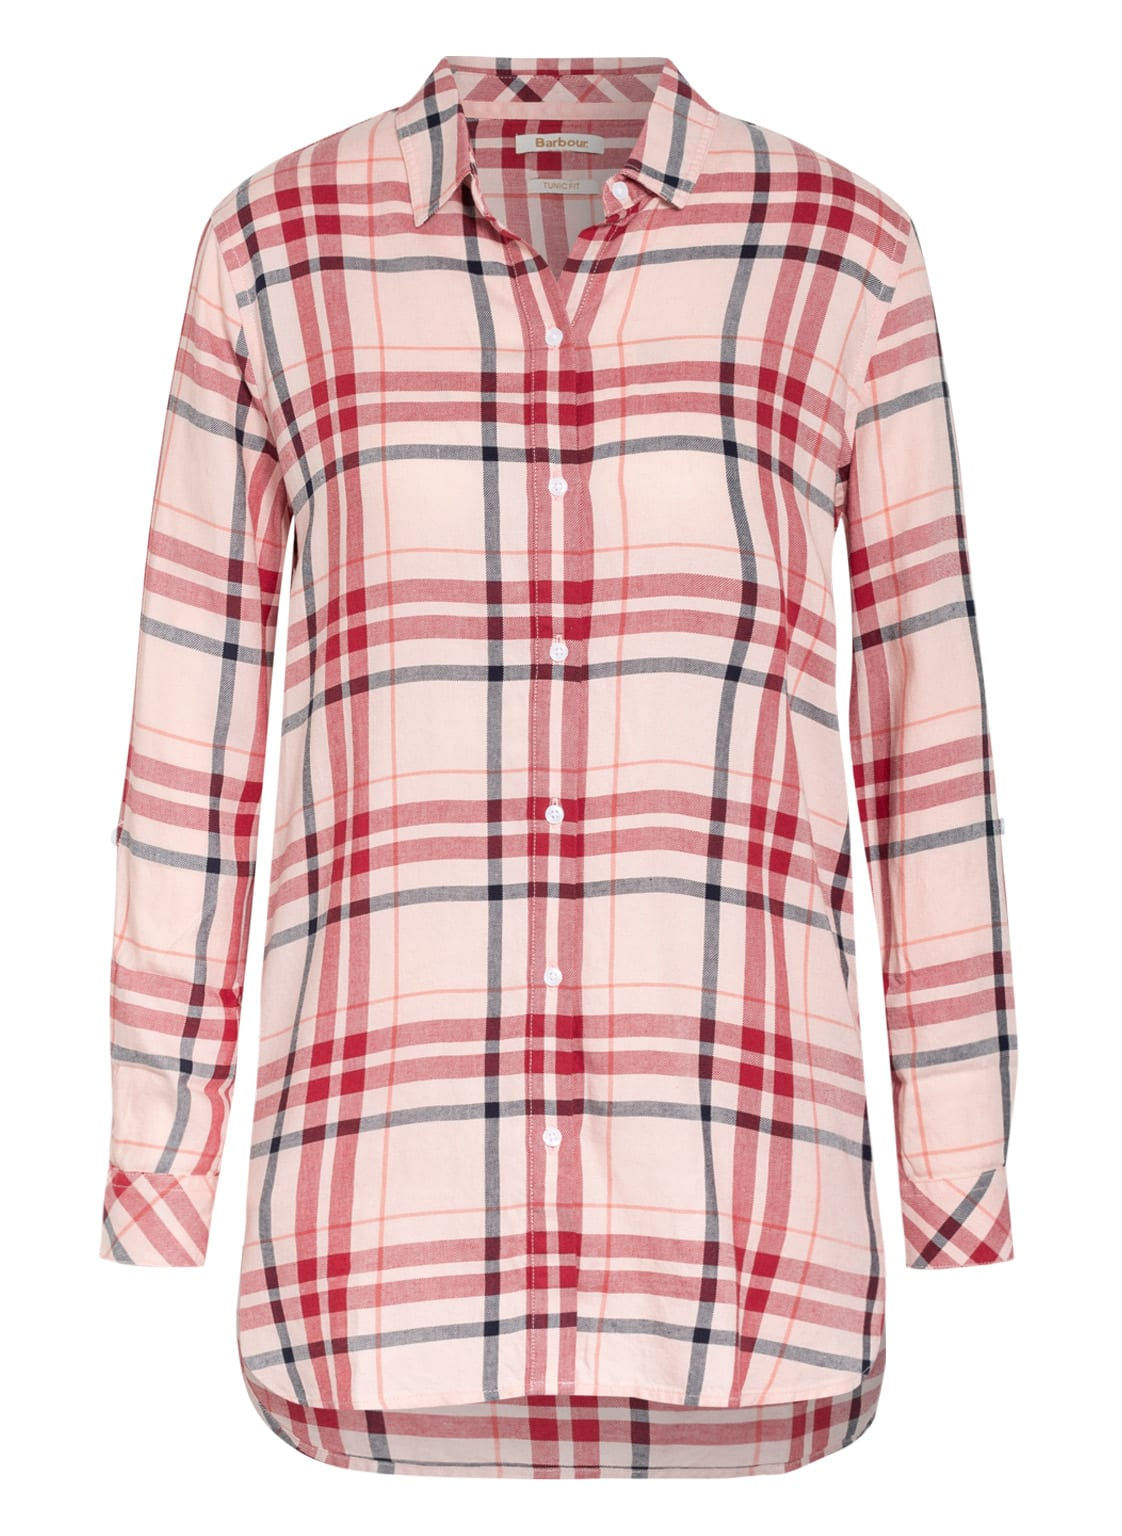 Image of Barbour Bluse rosa